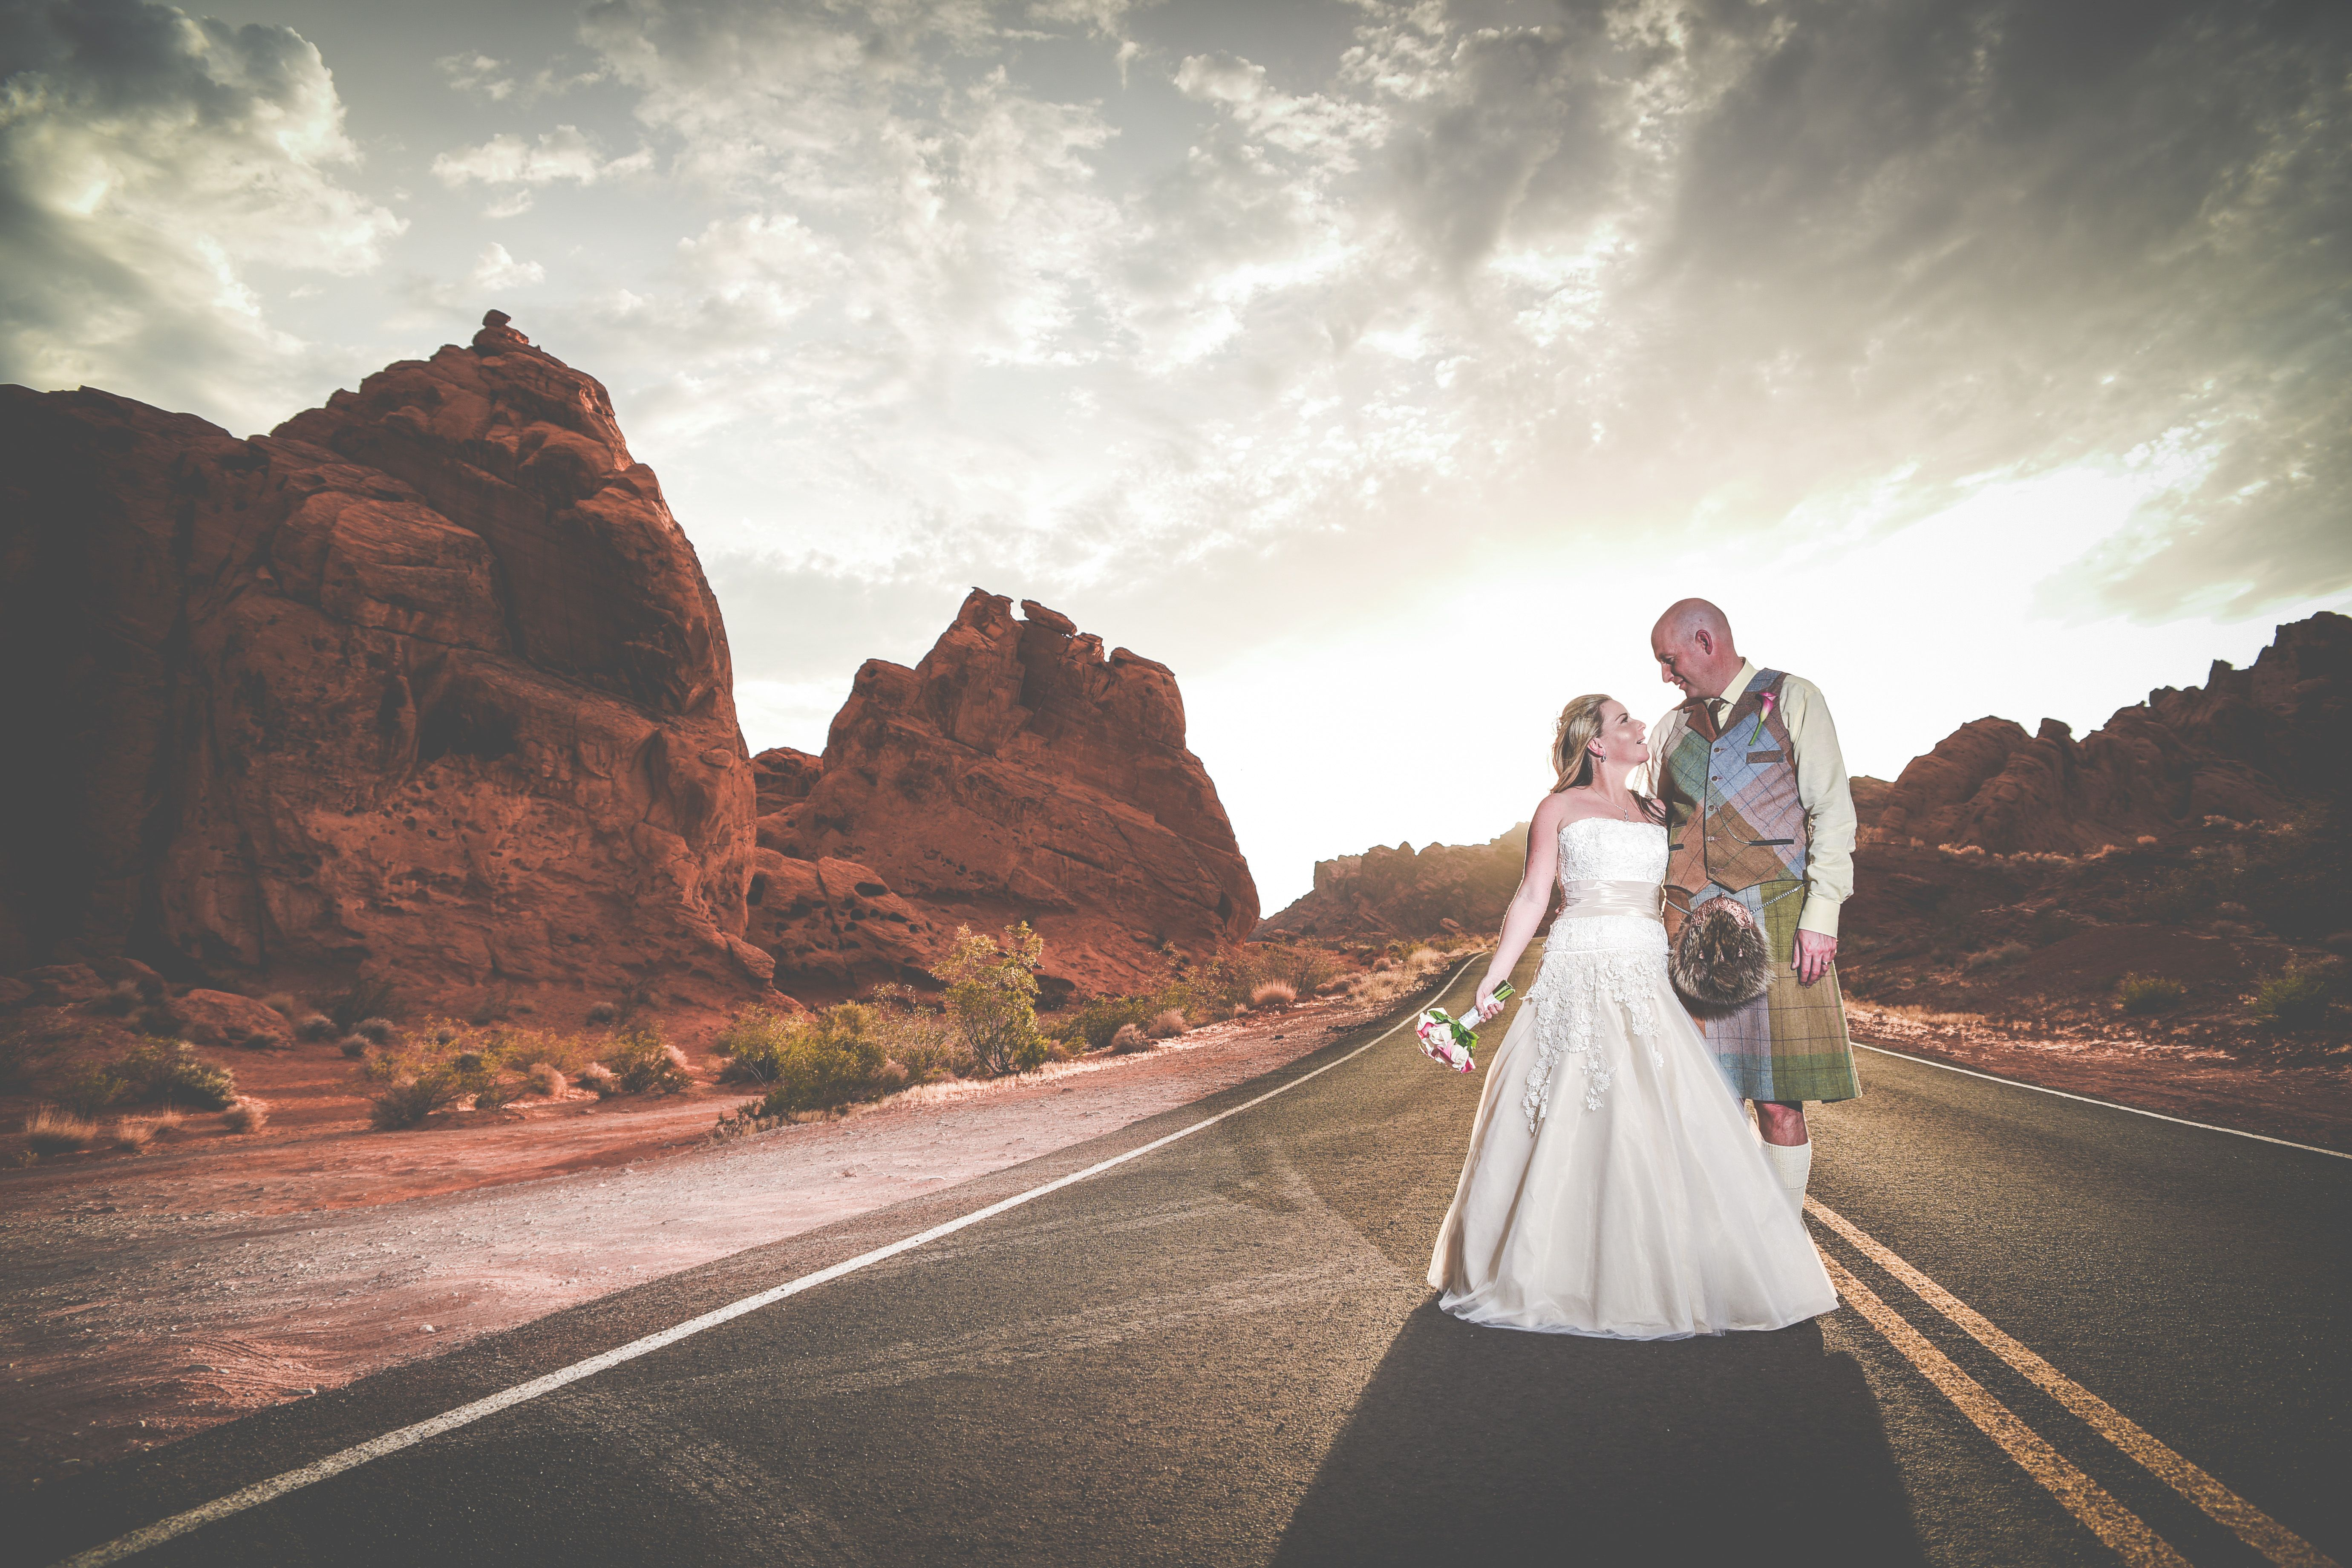 Sunburst Wedding Photo At The Valley Of Fire Near Las Vegas Got To Love Grooms